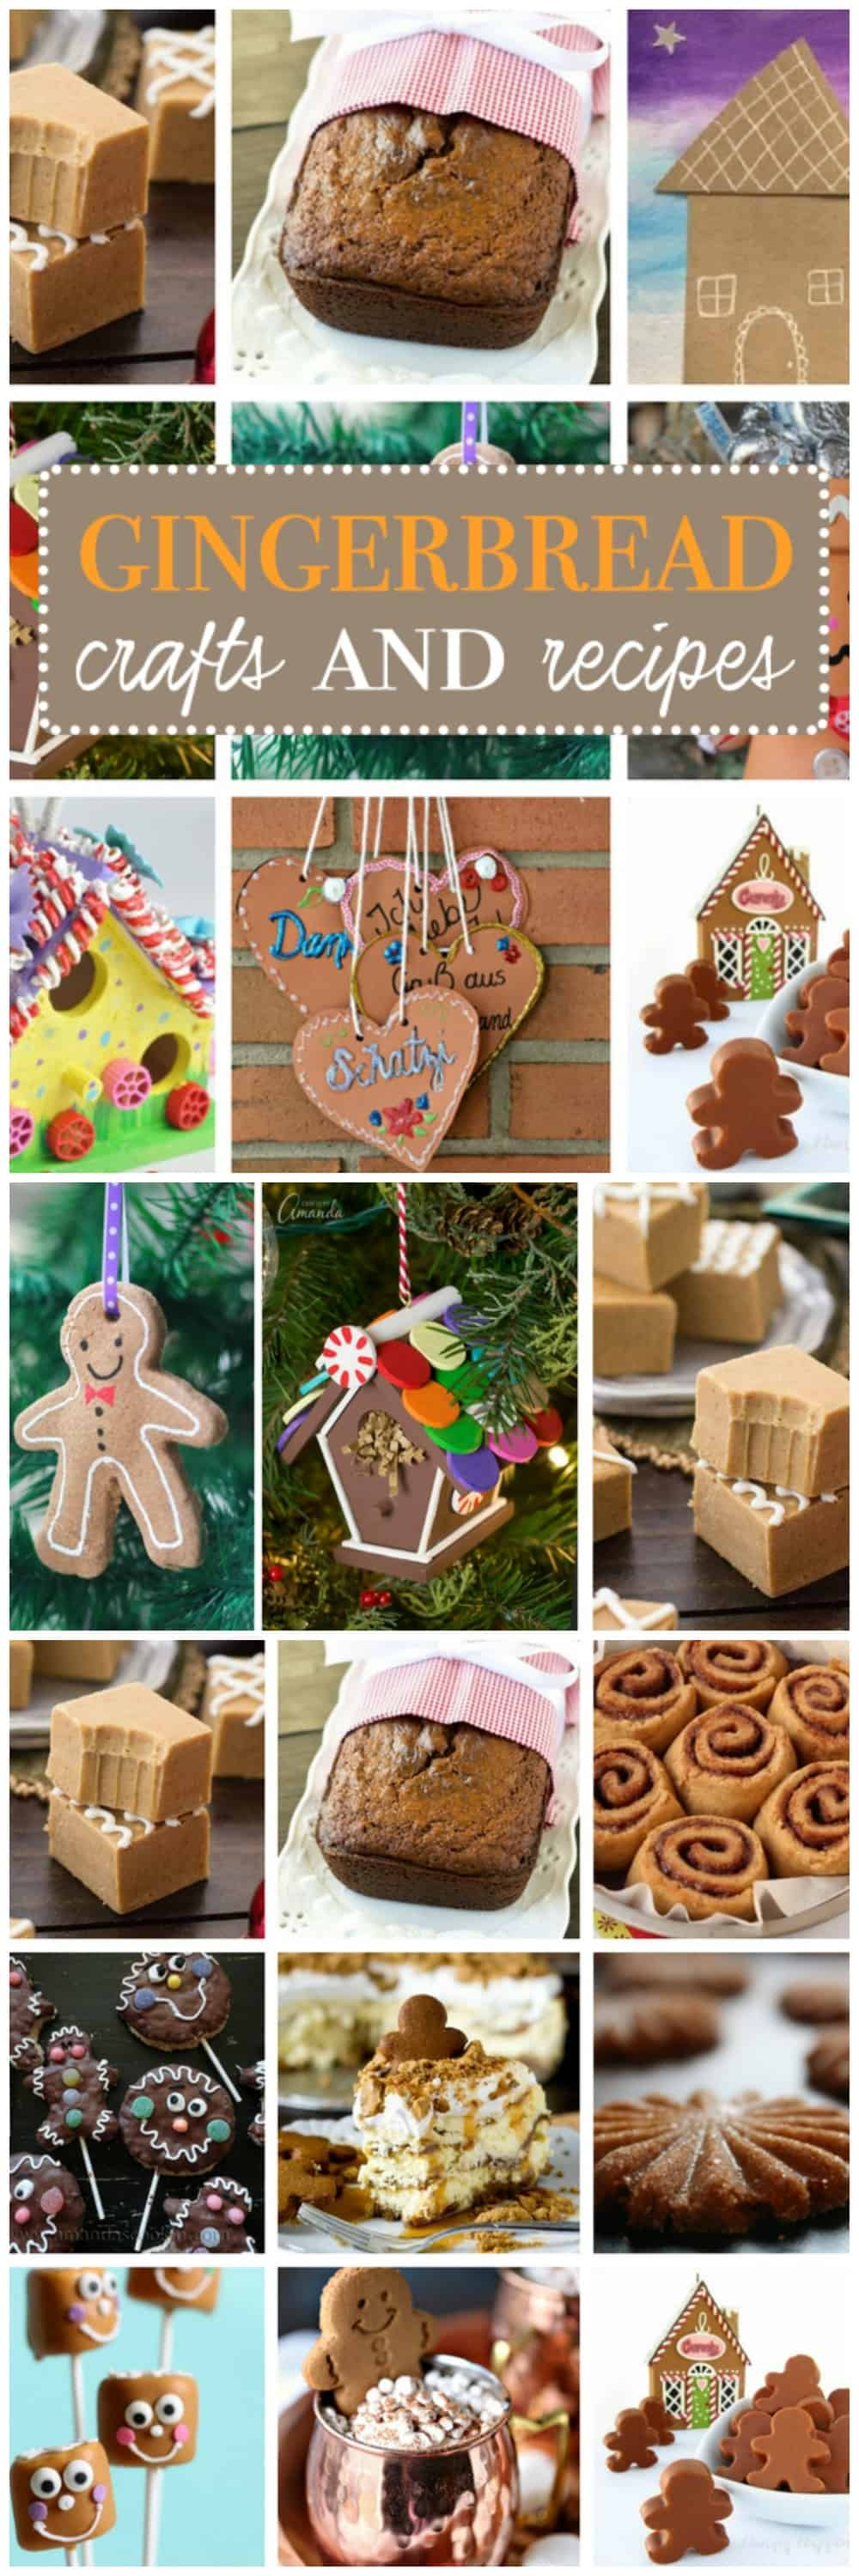 Gingerbread crafts are a whimsical addition to your holiday line-up, and today we've collected 30 Unique Gingerbread Ideas from edibles to crafts!